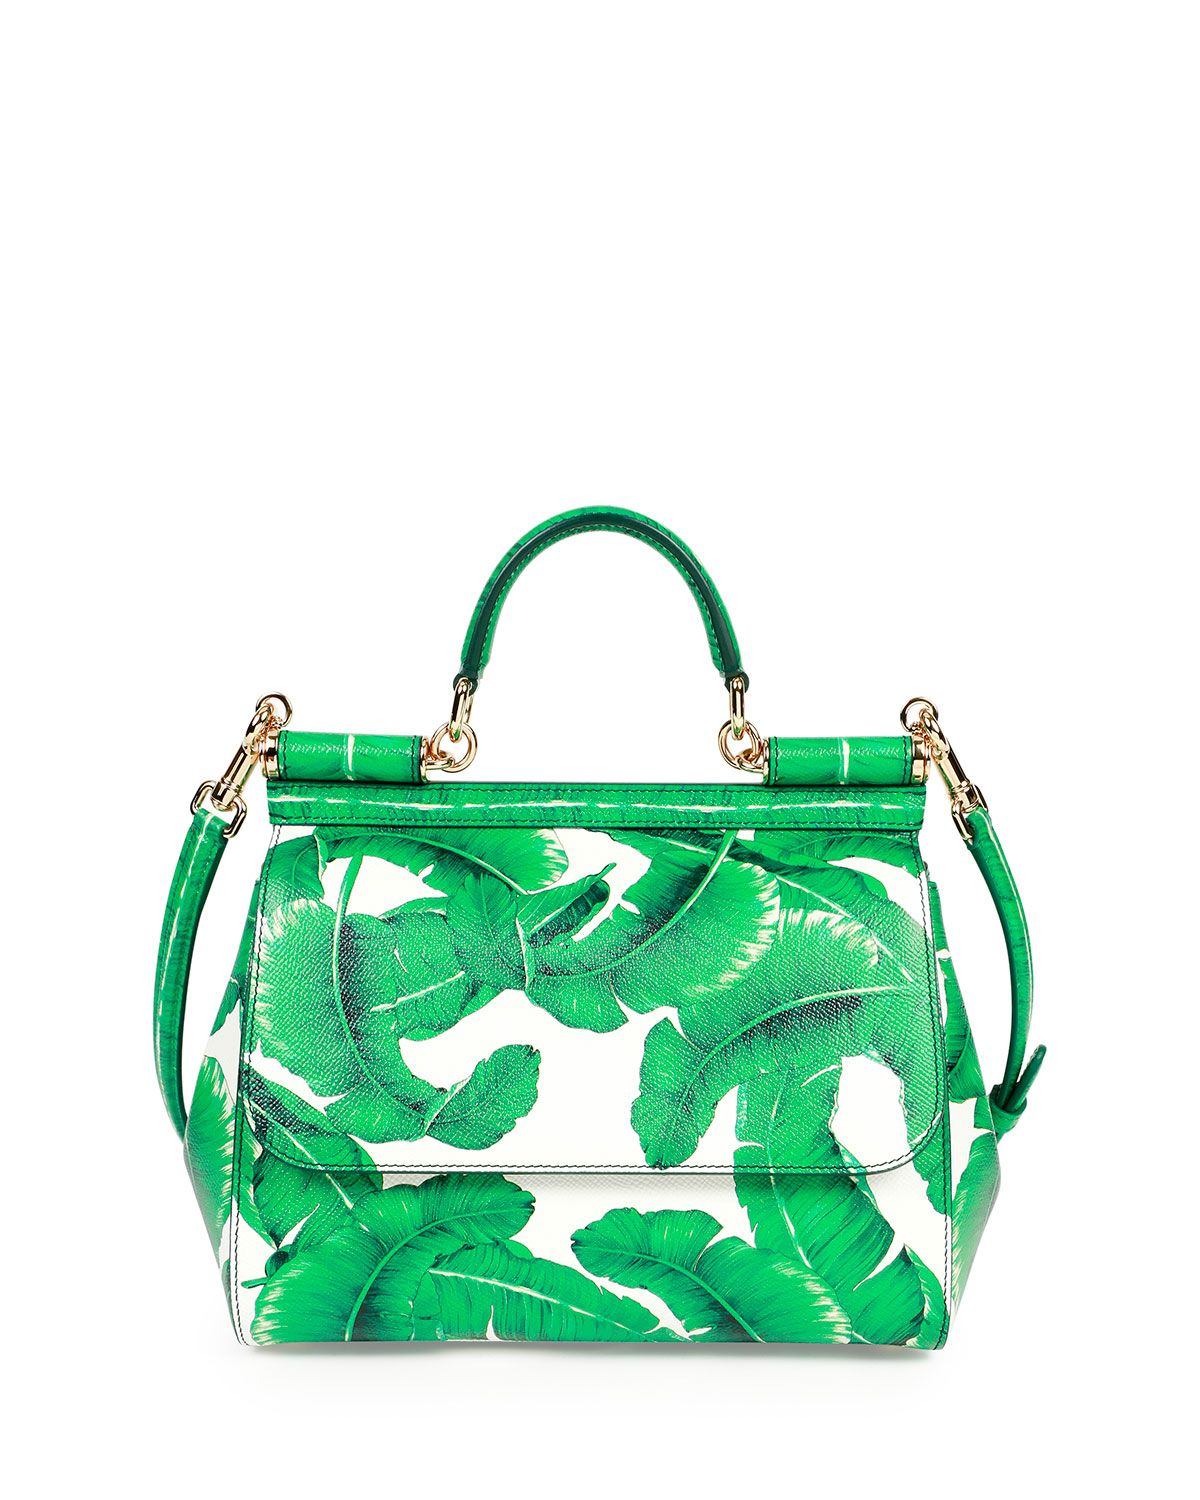 8497d5c512e Miss Sicily Medium Leather Banana Leaf Satchel Bag, Green/White, Size: M,  Green Multi - Dolce & Gabbana